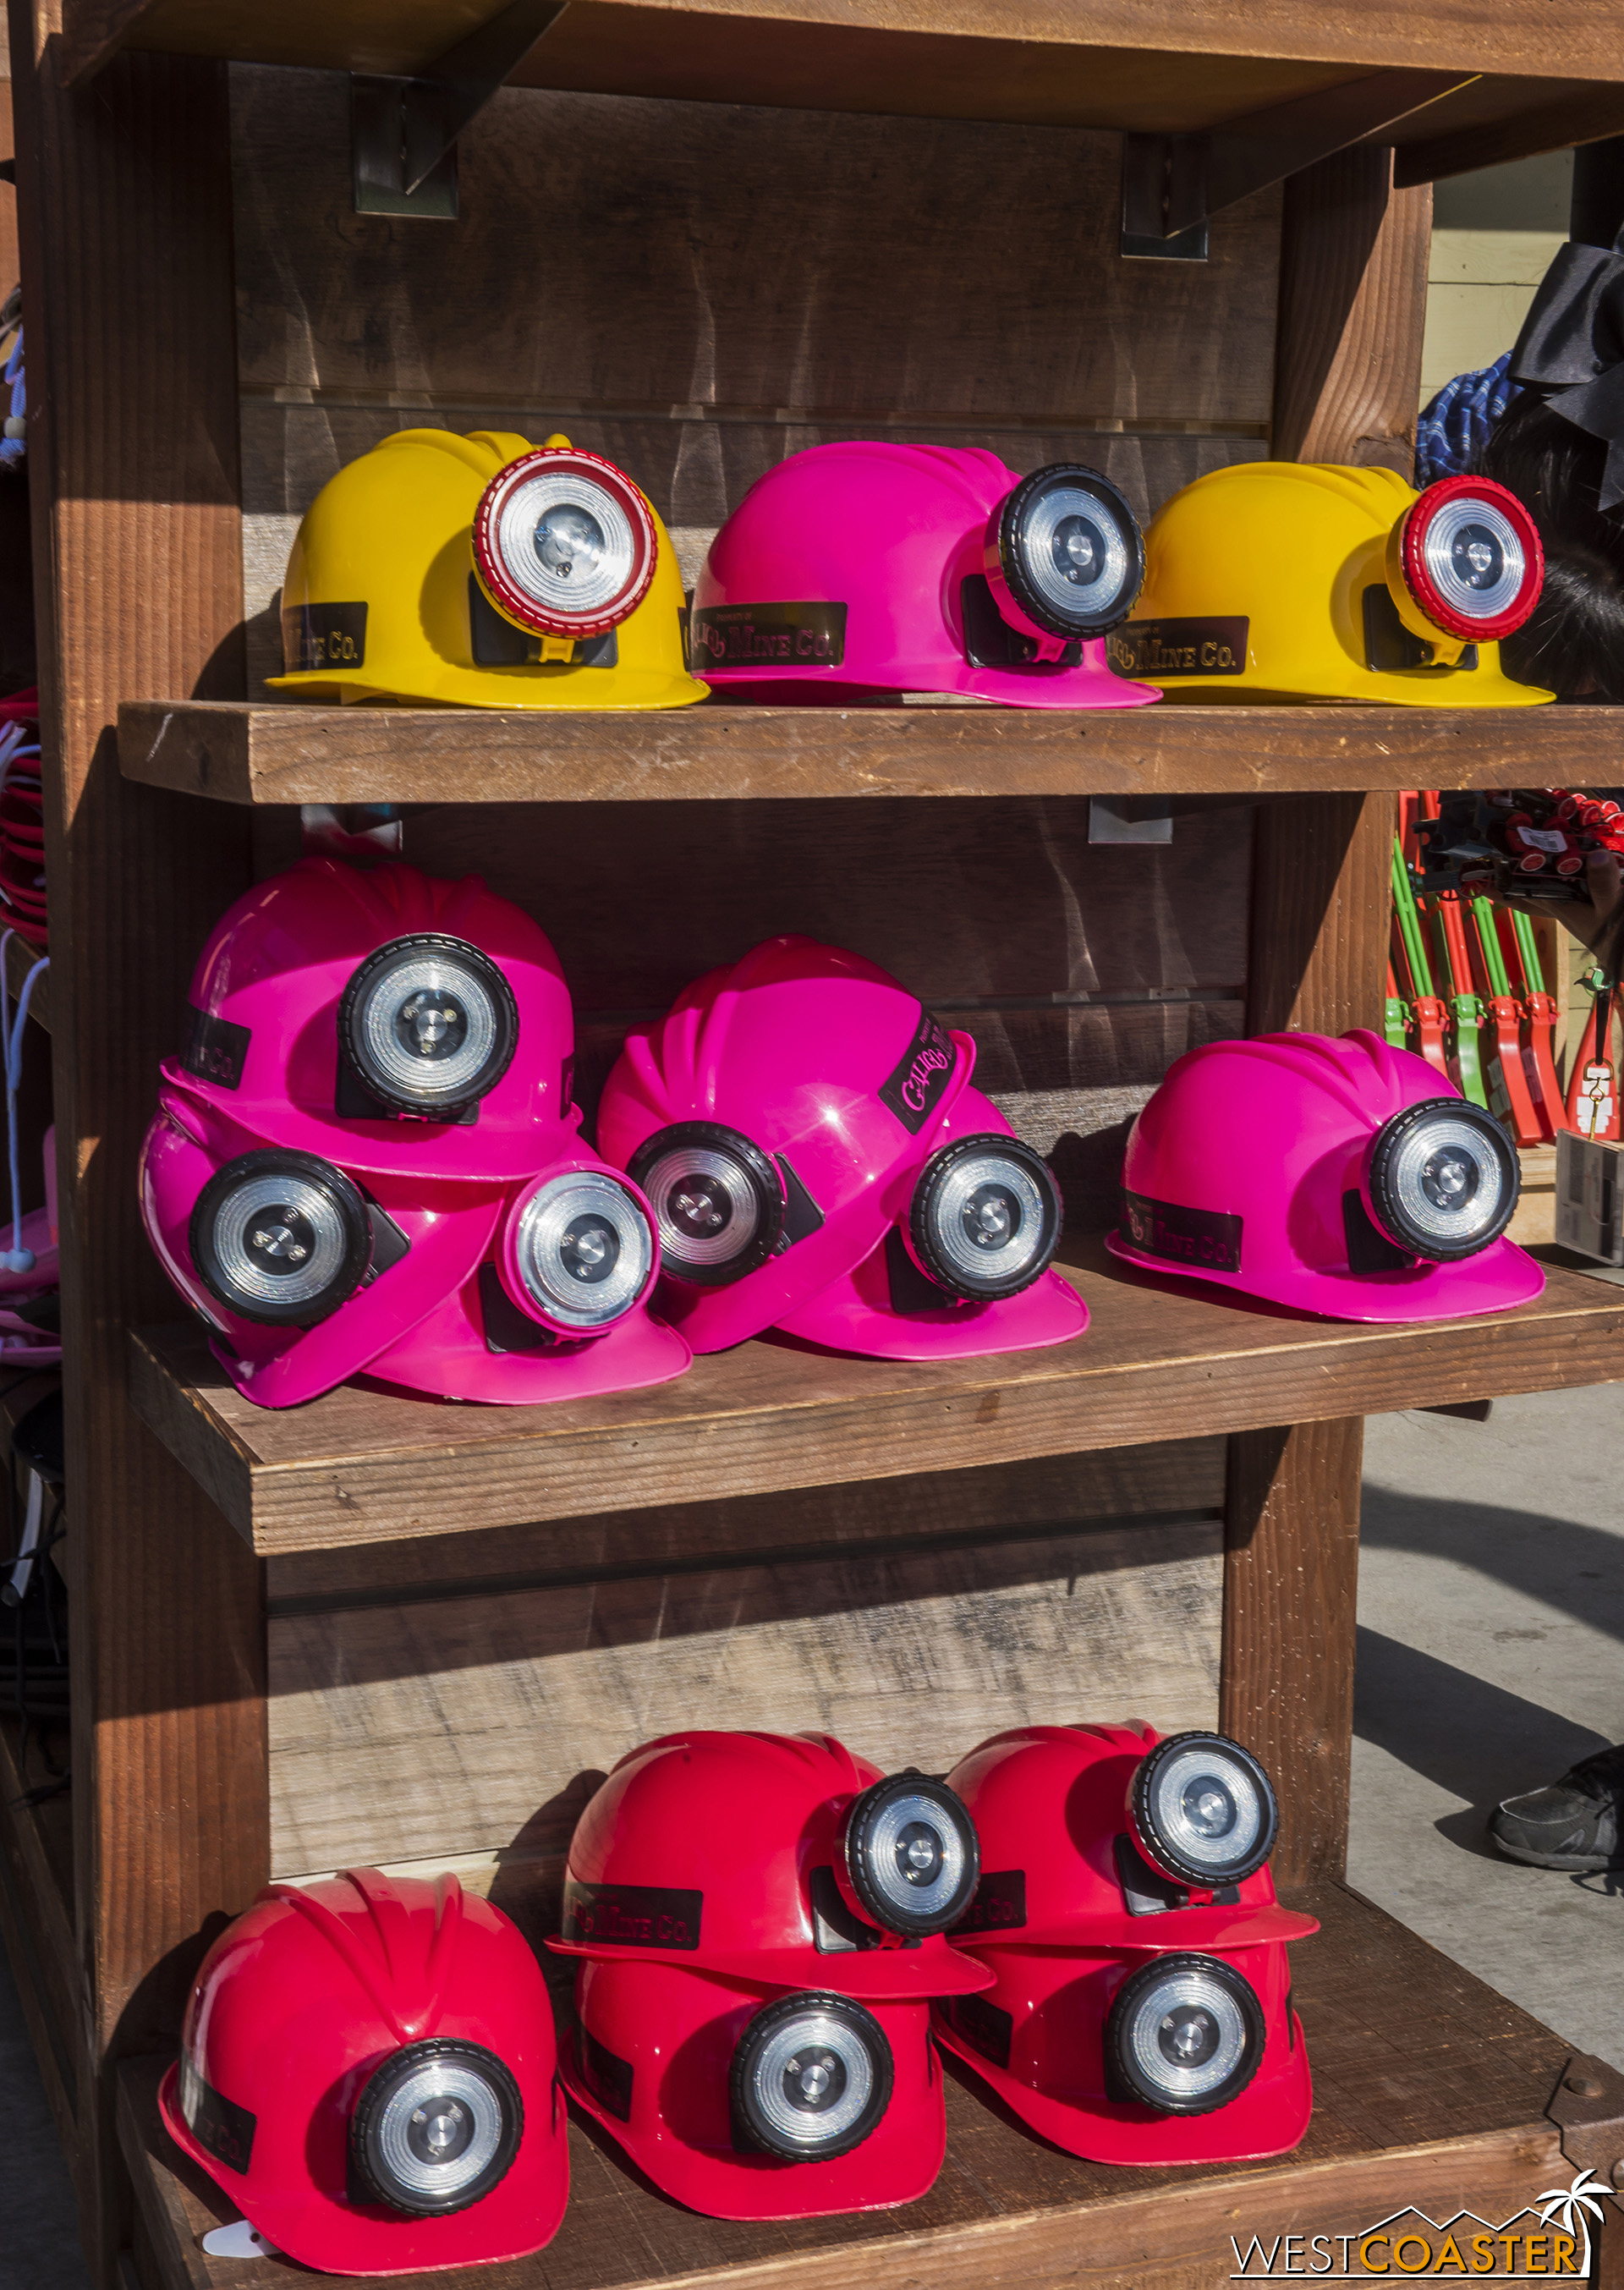 Not really festival merch, but these colorful miner's hats are kind of absurd.